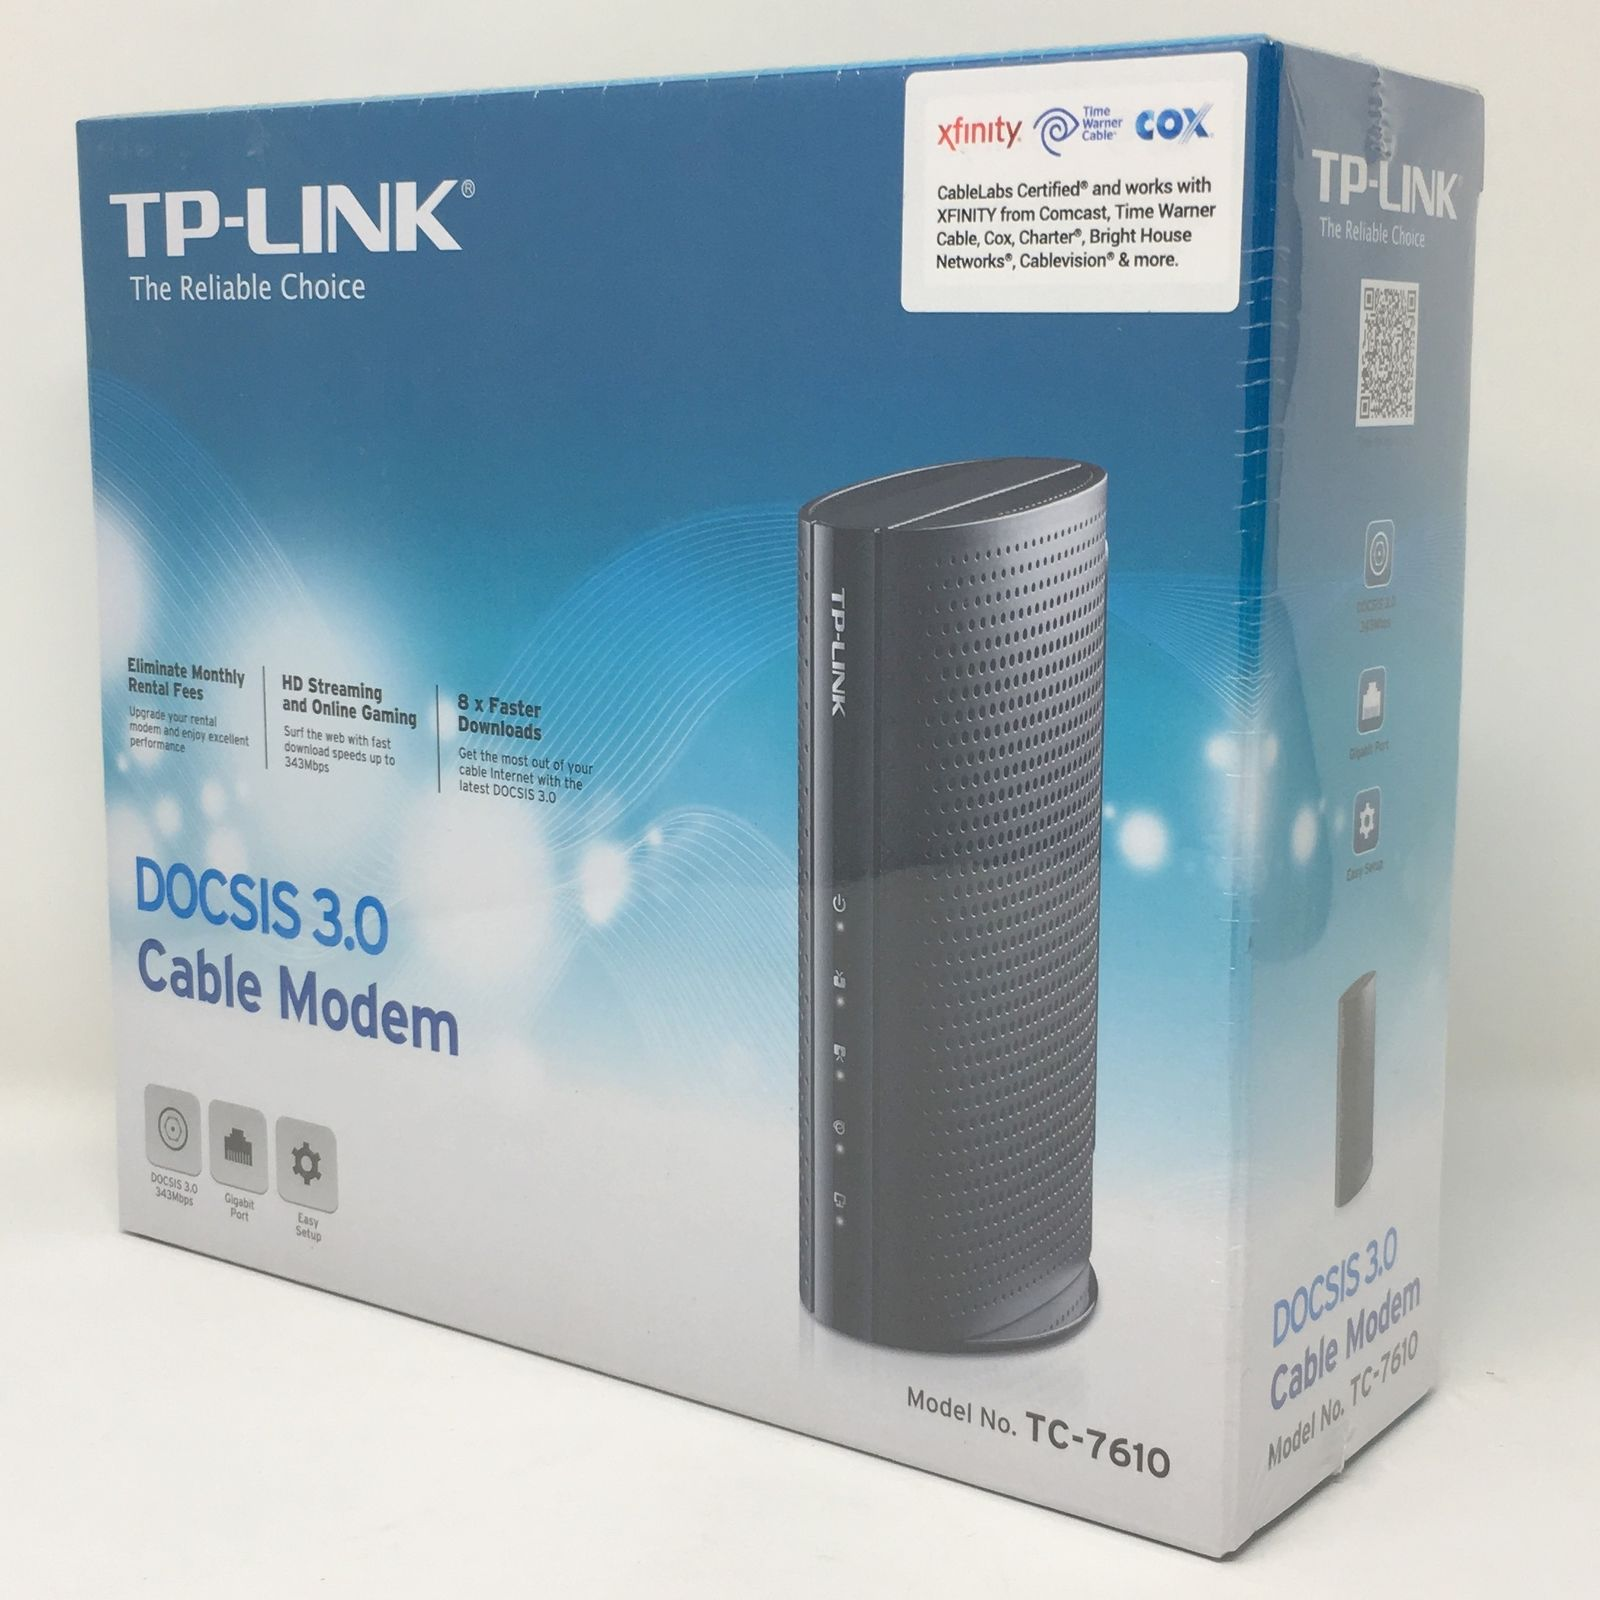 TP-LINK DOCSIS 3.0 High Speed Cable Modem Spectrum XFINITY Time Warner Cox